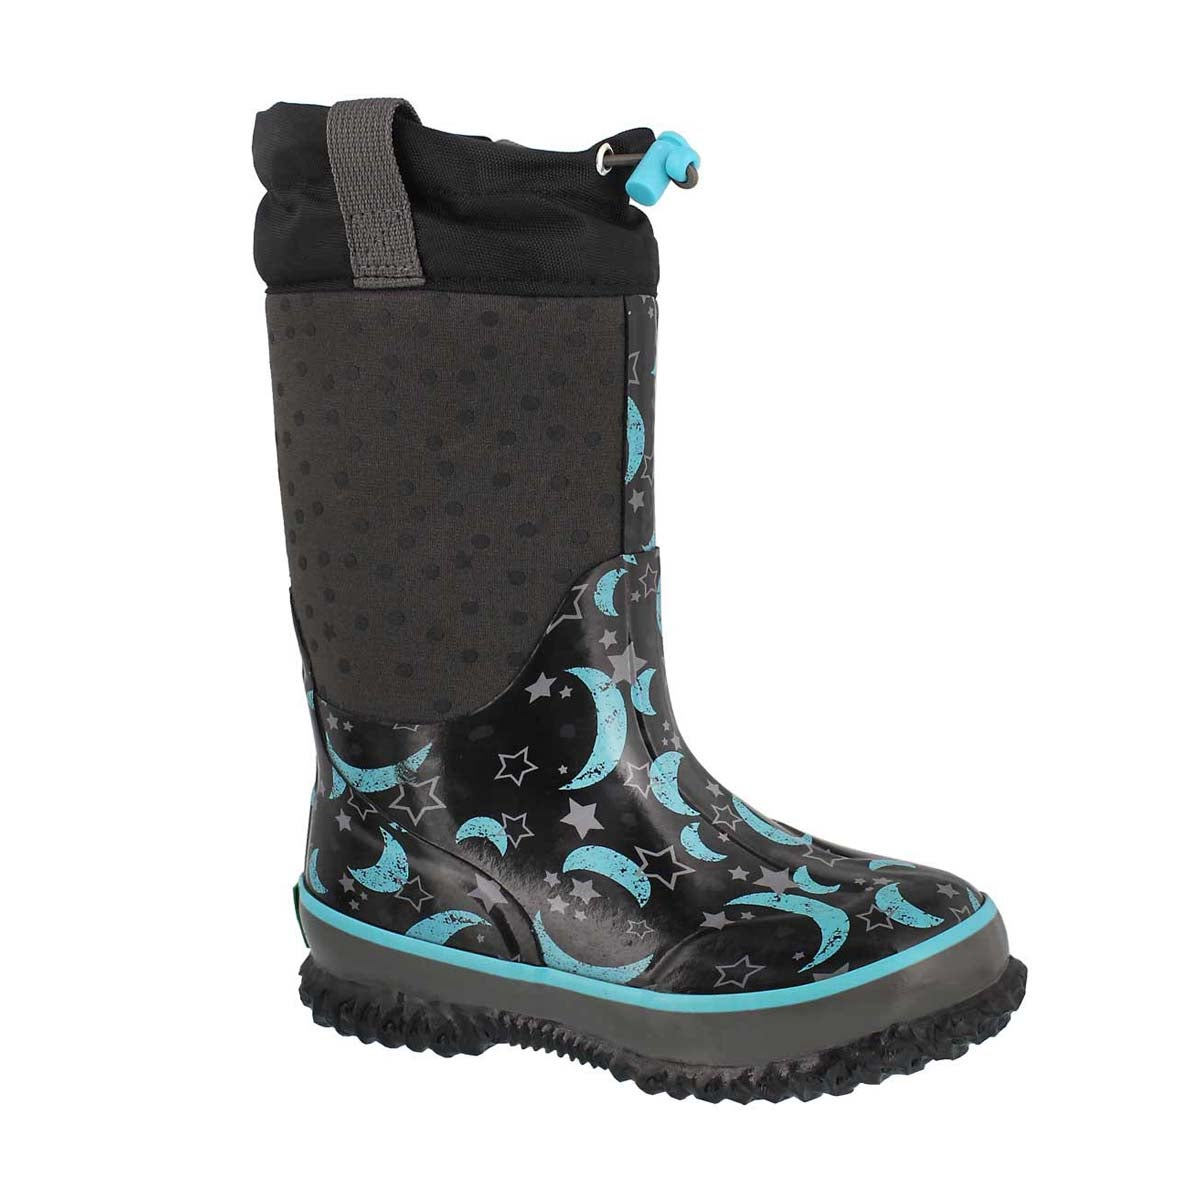 Grls Night Sky blk pullon wp wntr boot